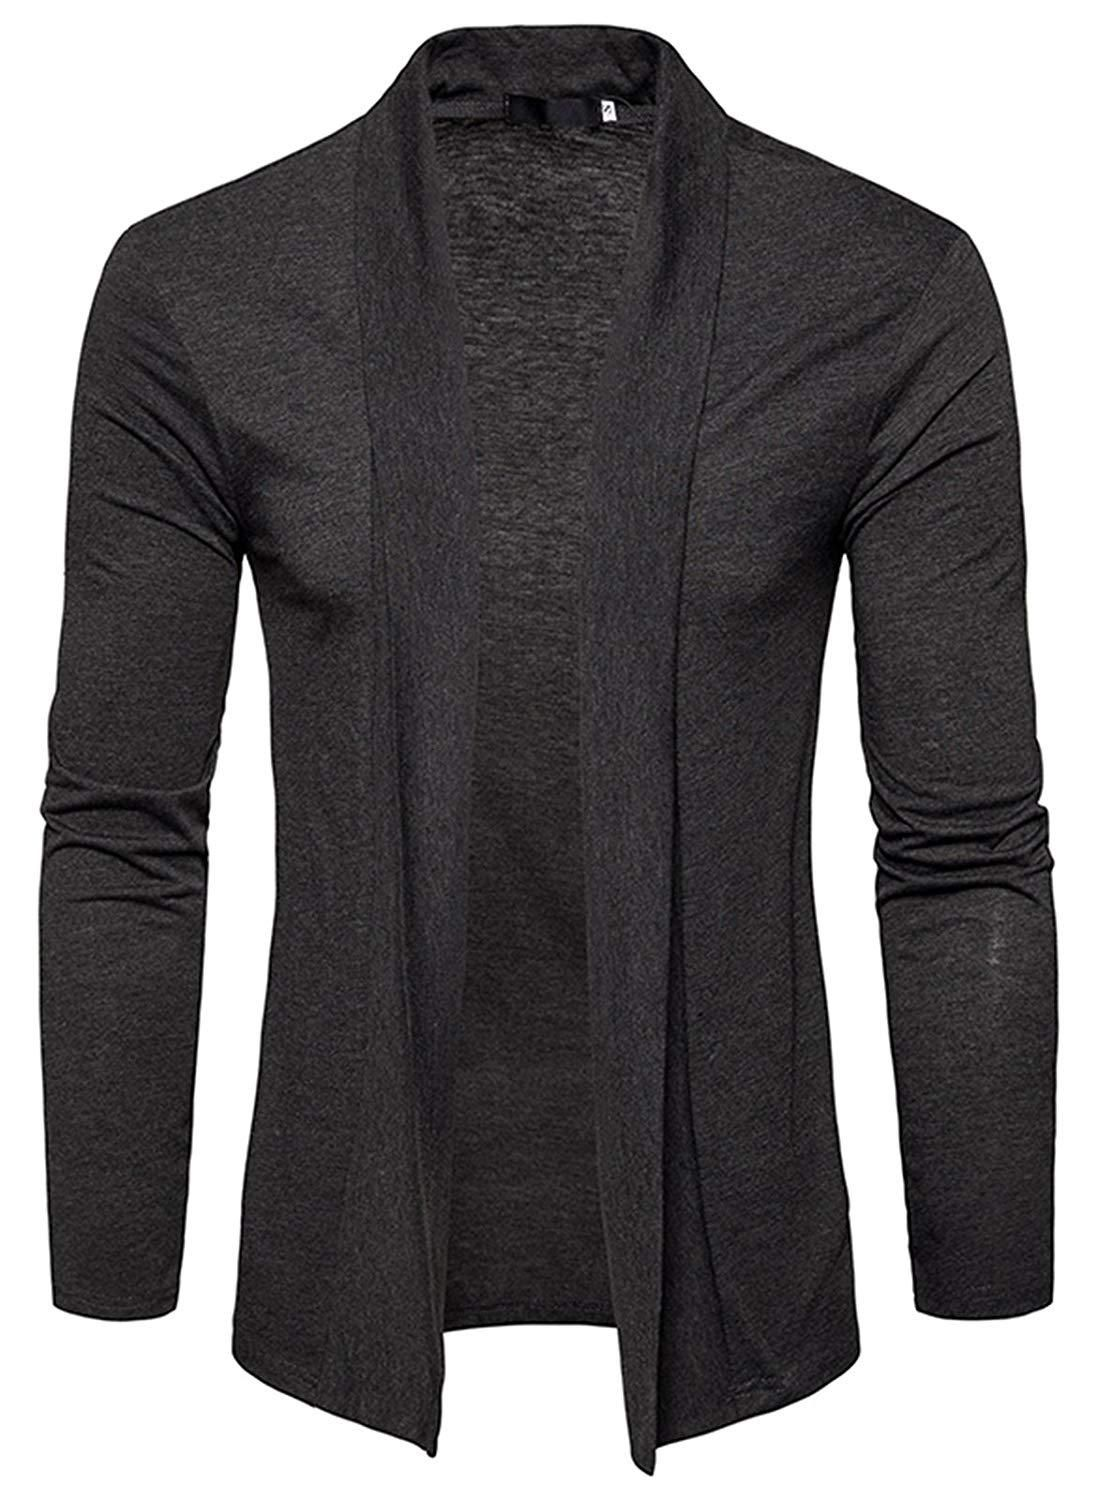 Whatlees Mens Casual Open Front Sweater Cardigan